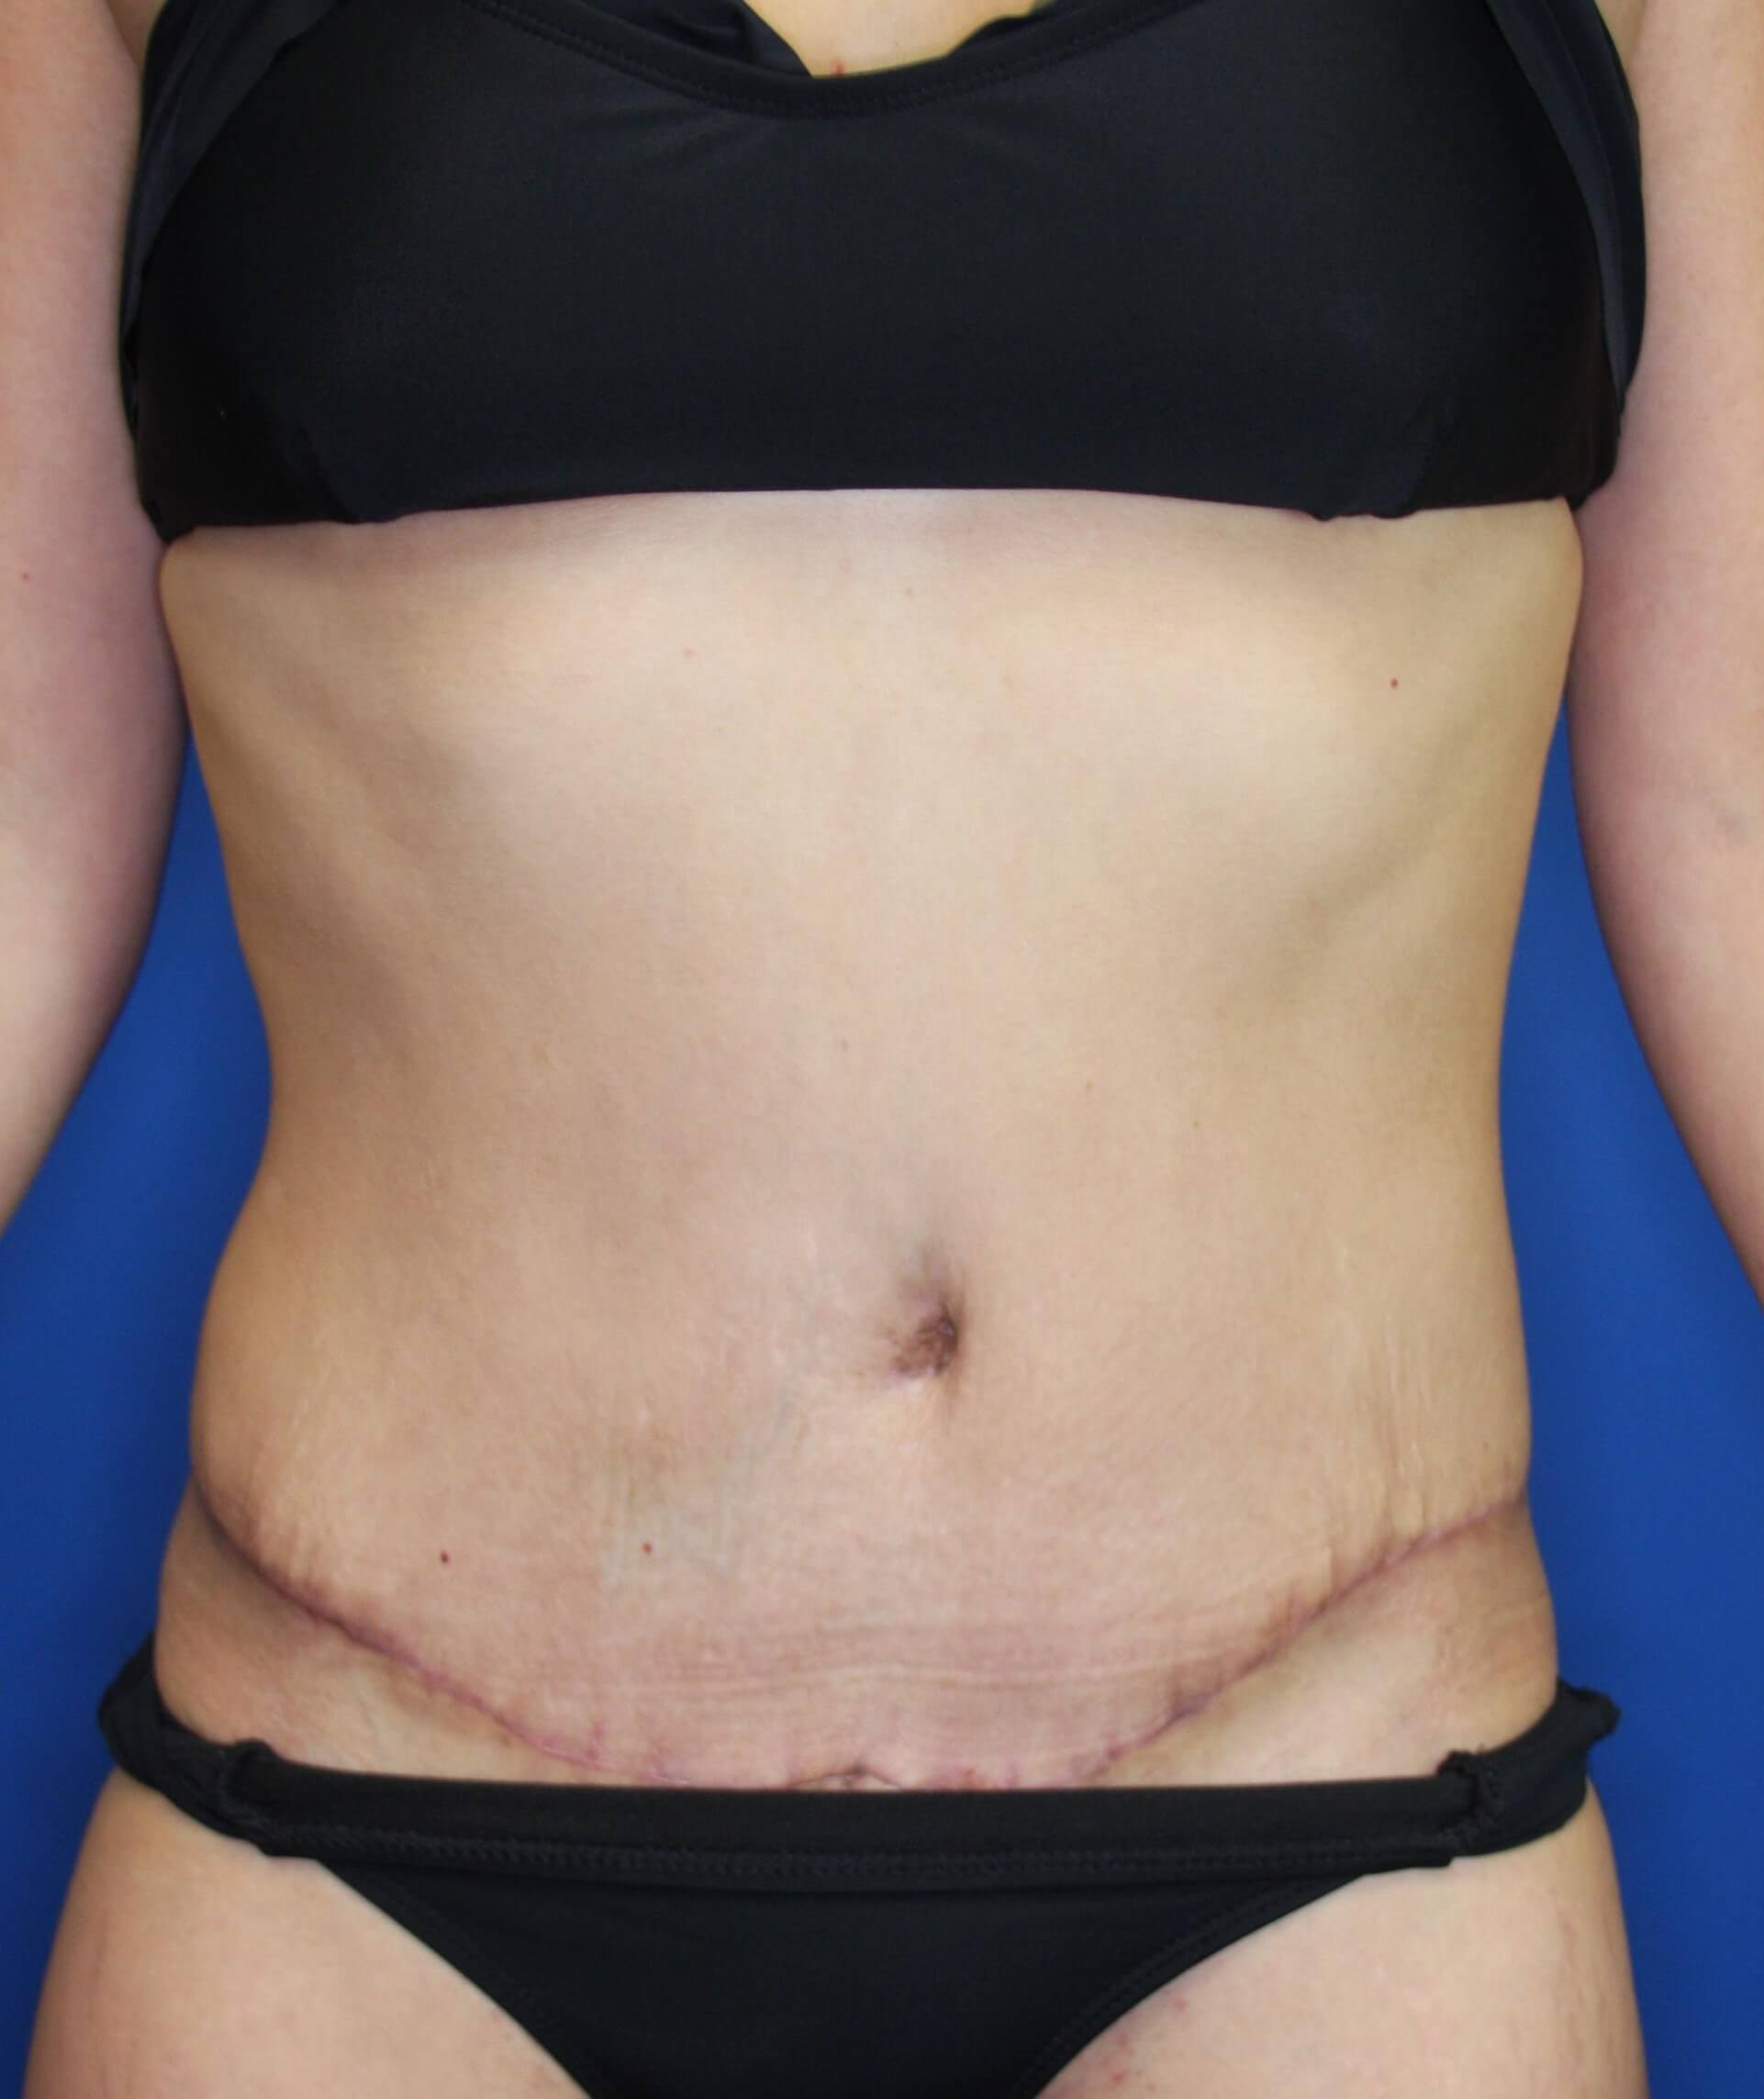 Tummy Tuck, Downers Grove, IL 2 months postop